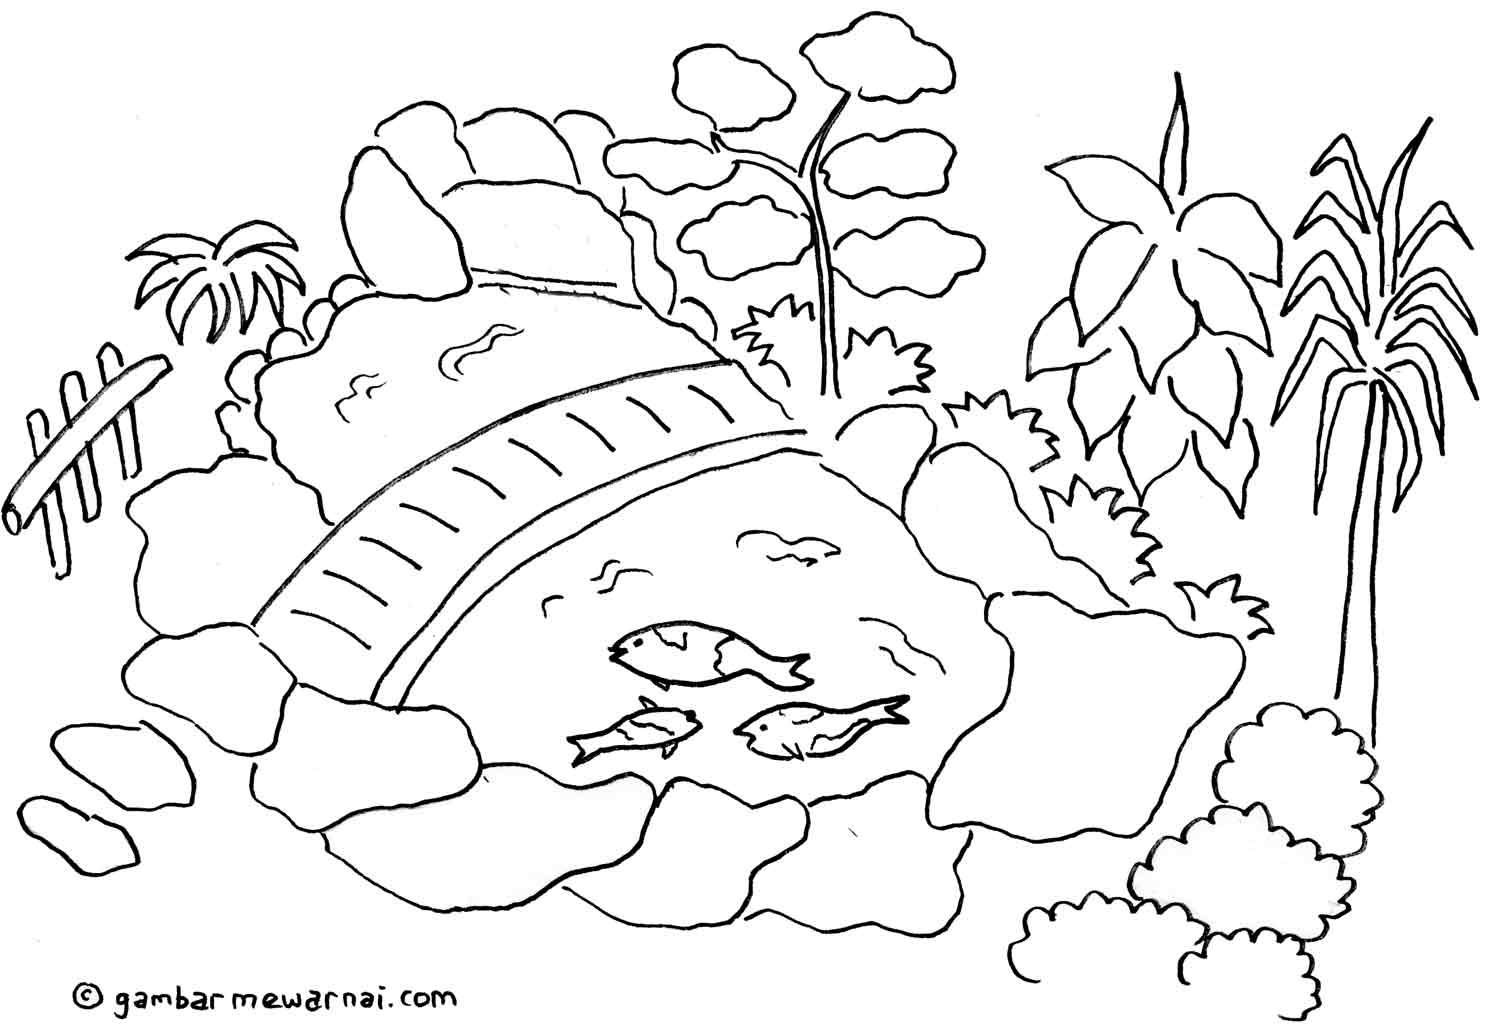 Gambar Mewarnai Kolam Hias Coloring Pages Dunia Embroidery Patterns Projects To Try